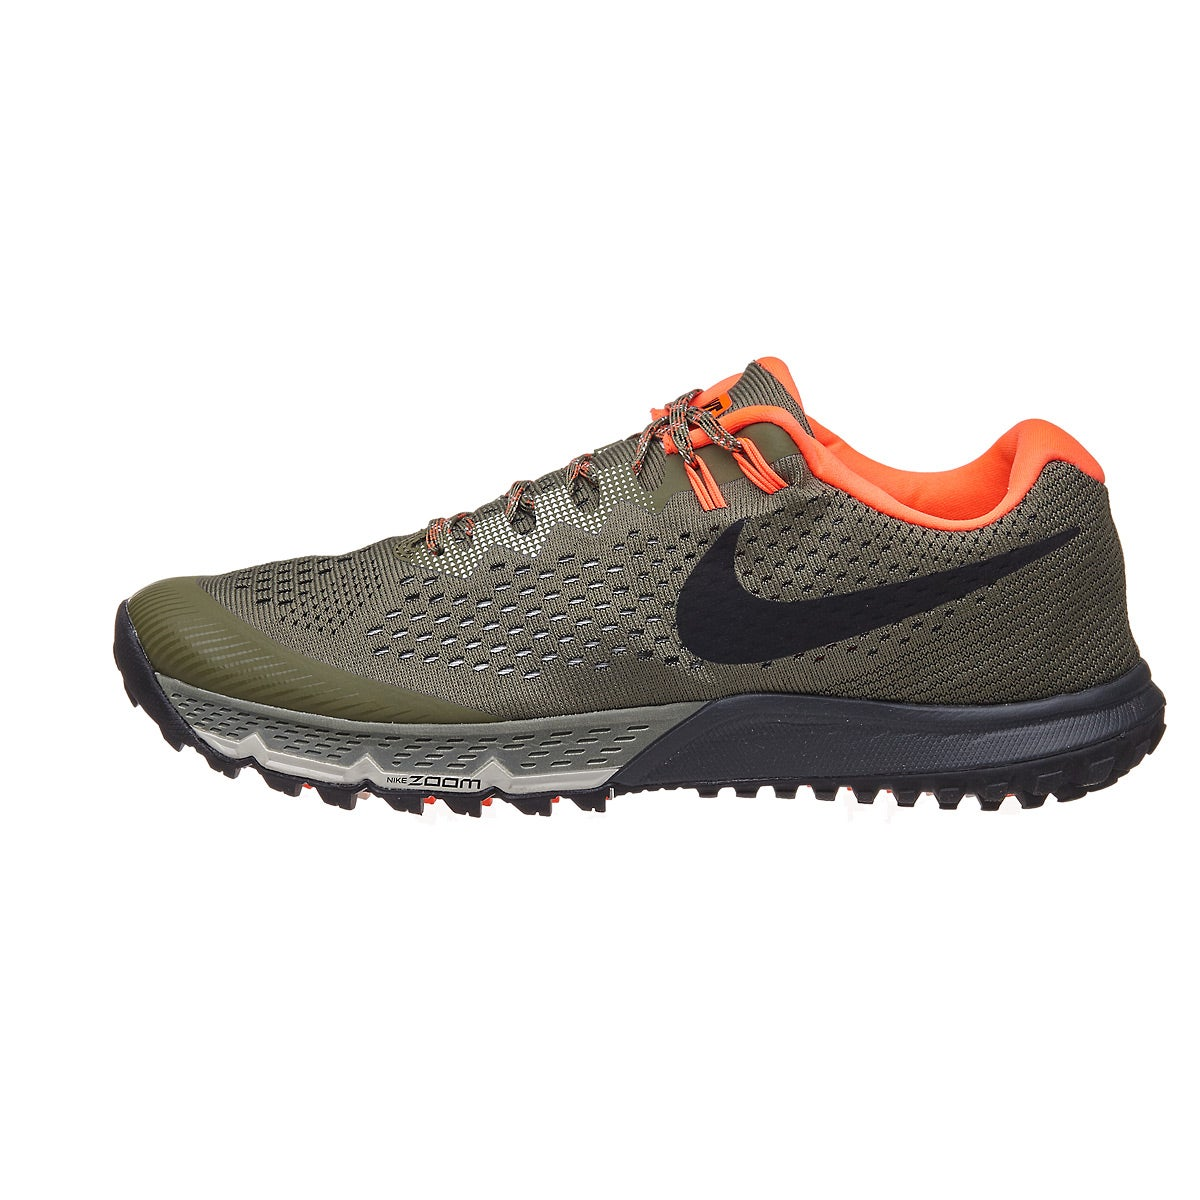 eb2dff6fb1 Nike Zoom Terra Kiger 4 Men's Shoes Medium Olive/Blac 360° View | Running  Warehouse Europe.